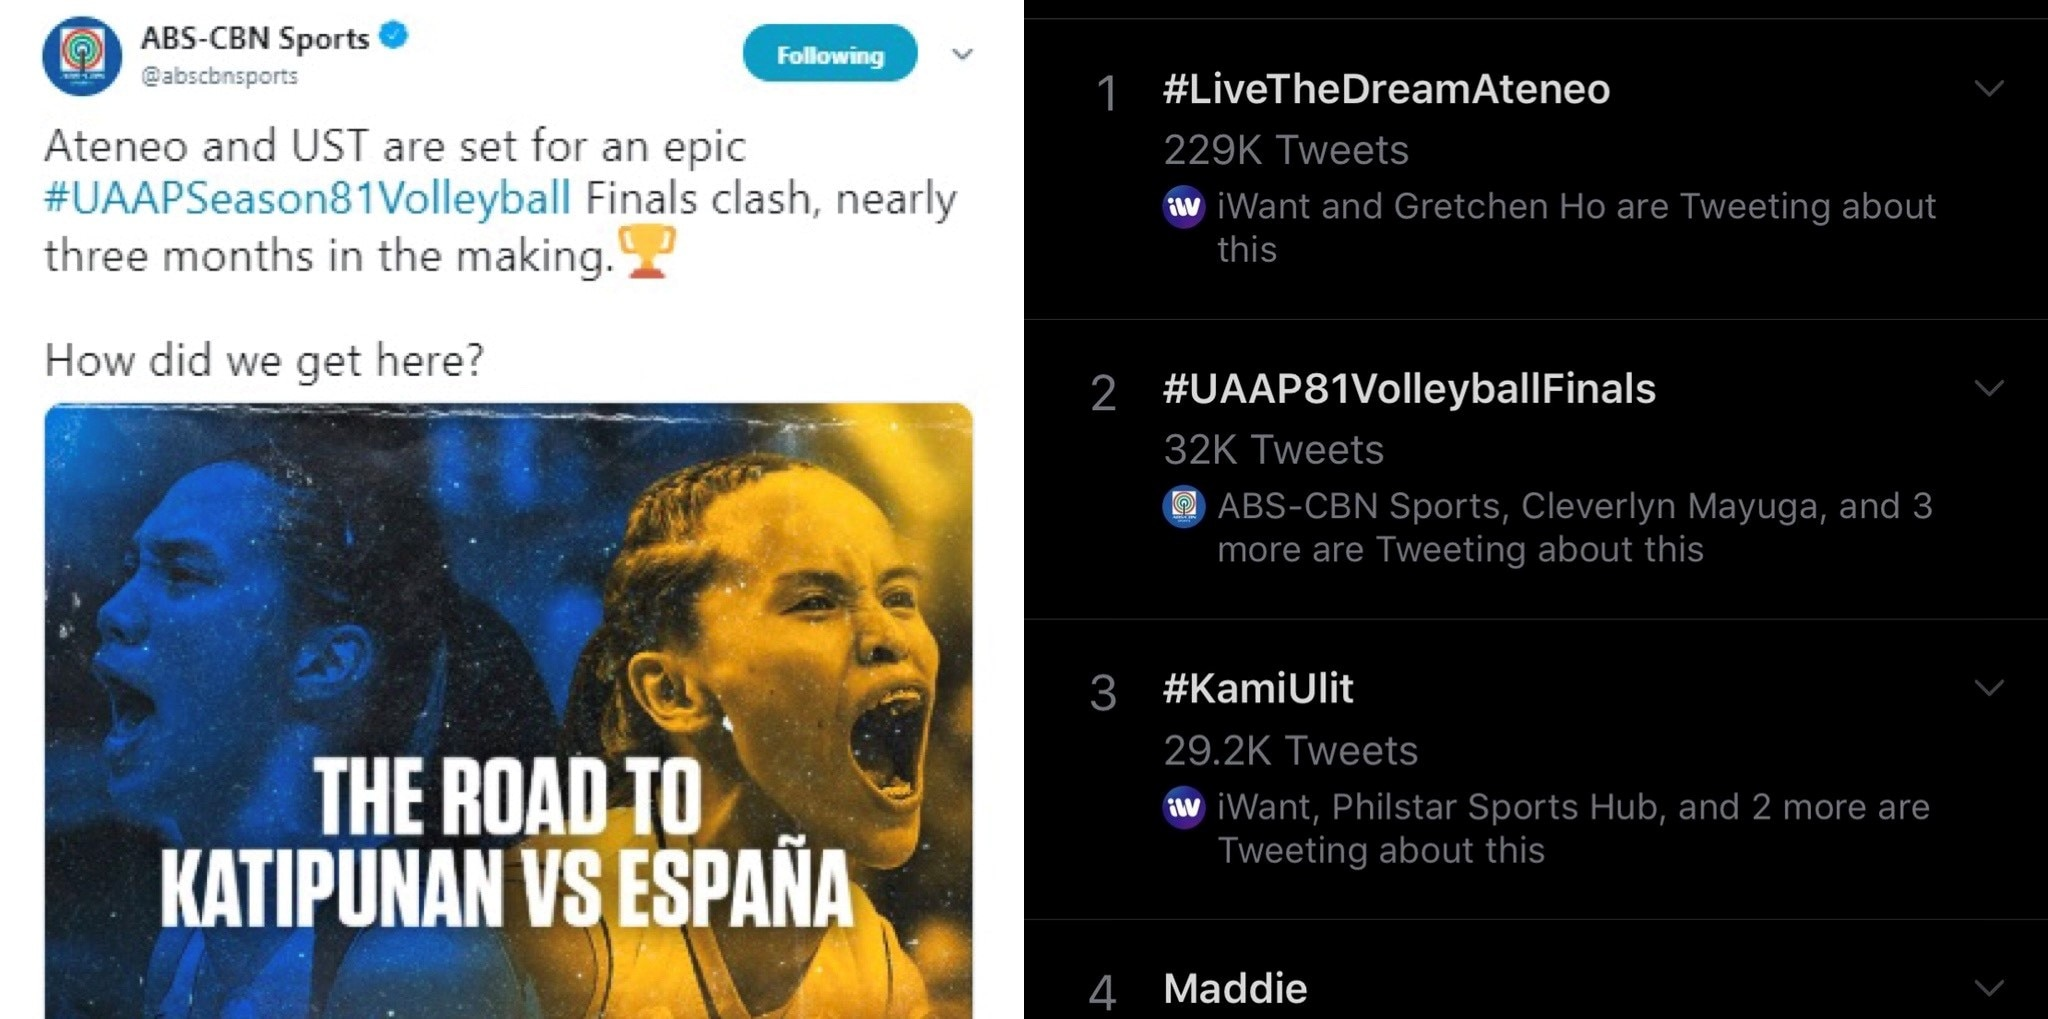 UAAP volleyball soars anew in Twitterverse